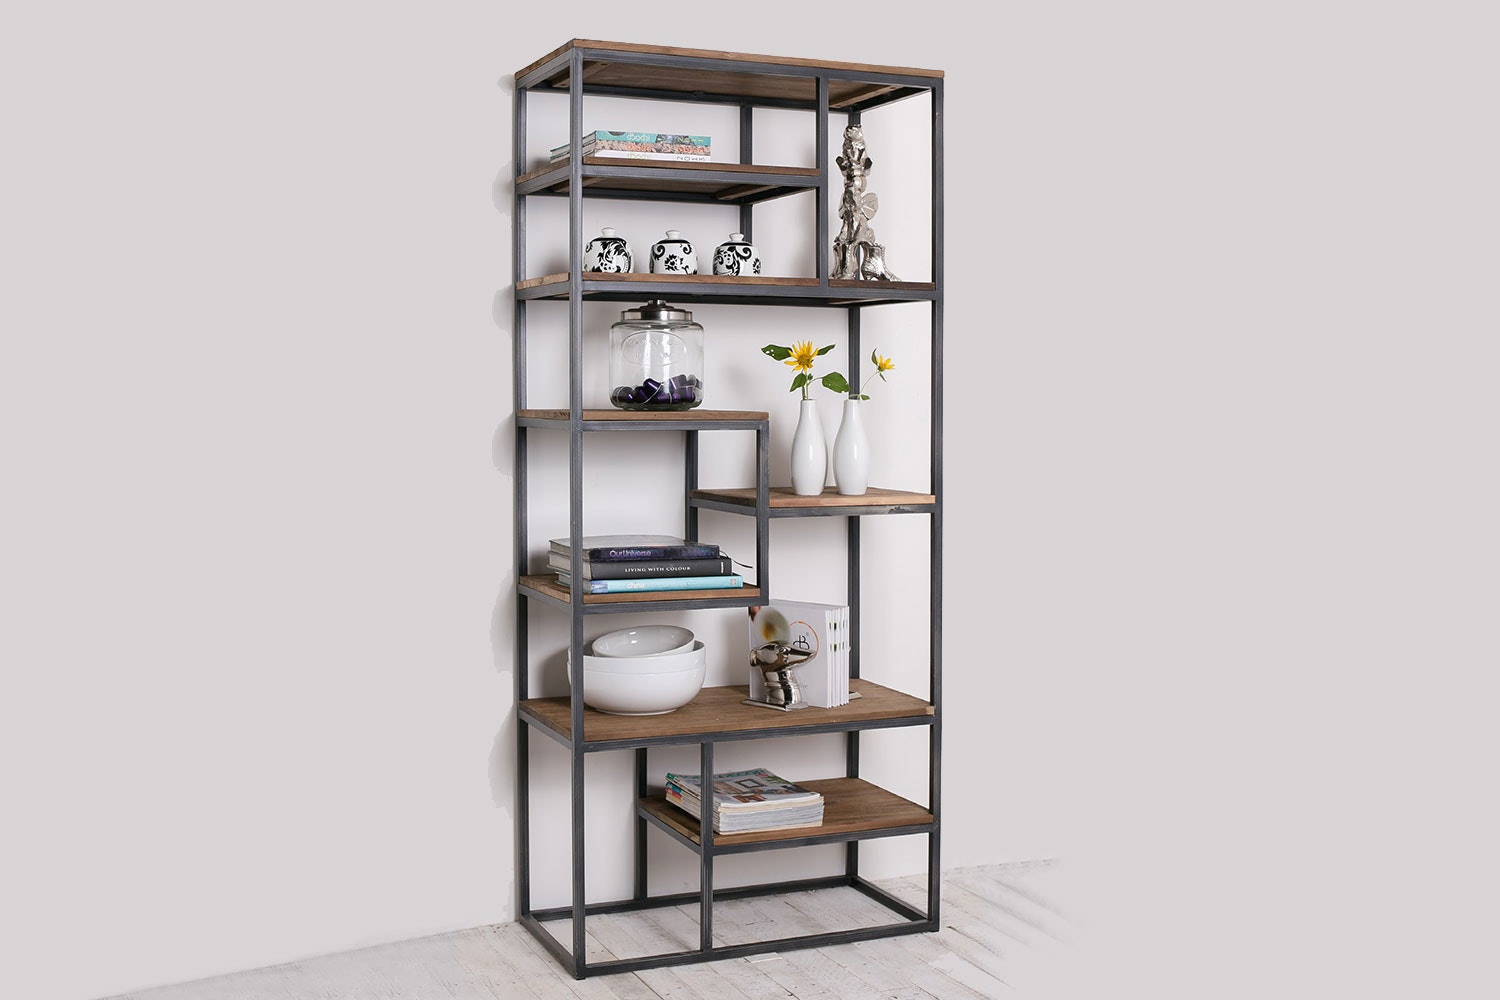 Fendy 7 Shelf Bookcase by D-Bodhi Collection